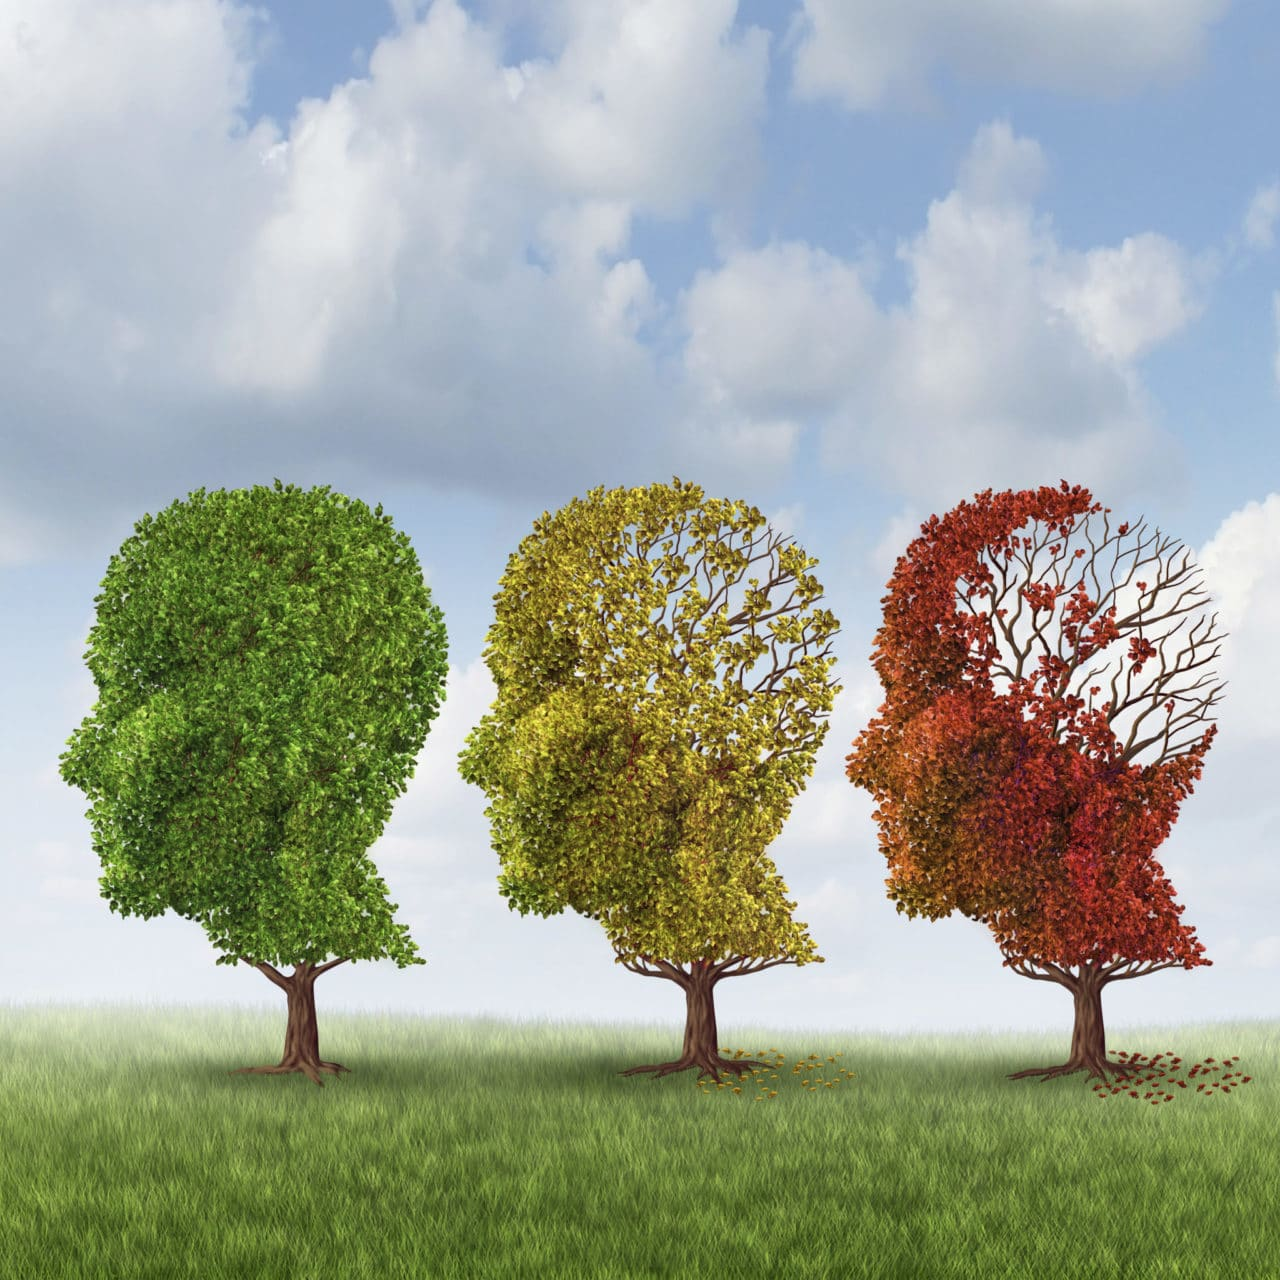 Graphic of three trees, each with branches in the shape of a human head in profile. The far left tree is green with full foliage, the center tree is yellow-green having lost some of its leaves from the back of the head, and the far right has red leaves mostly near the face.